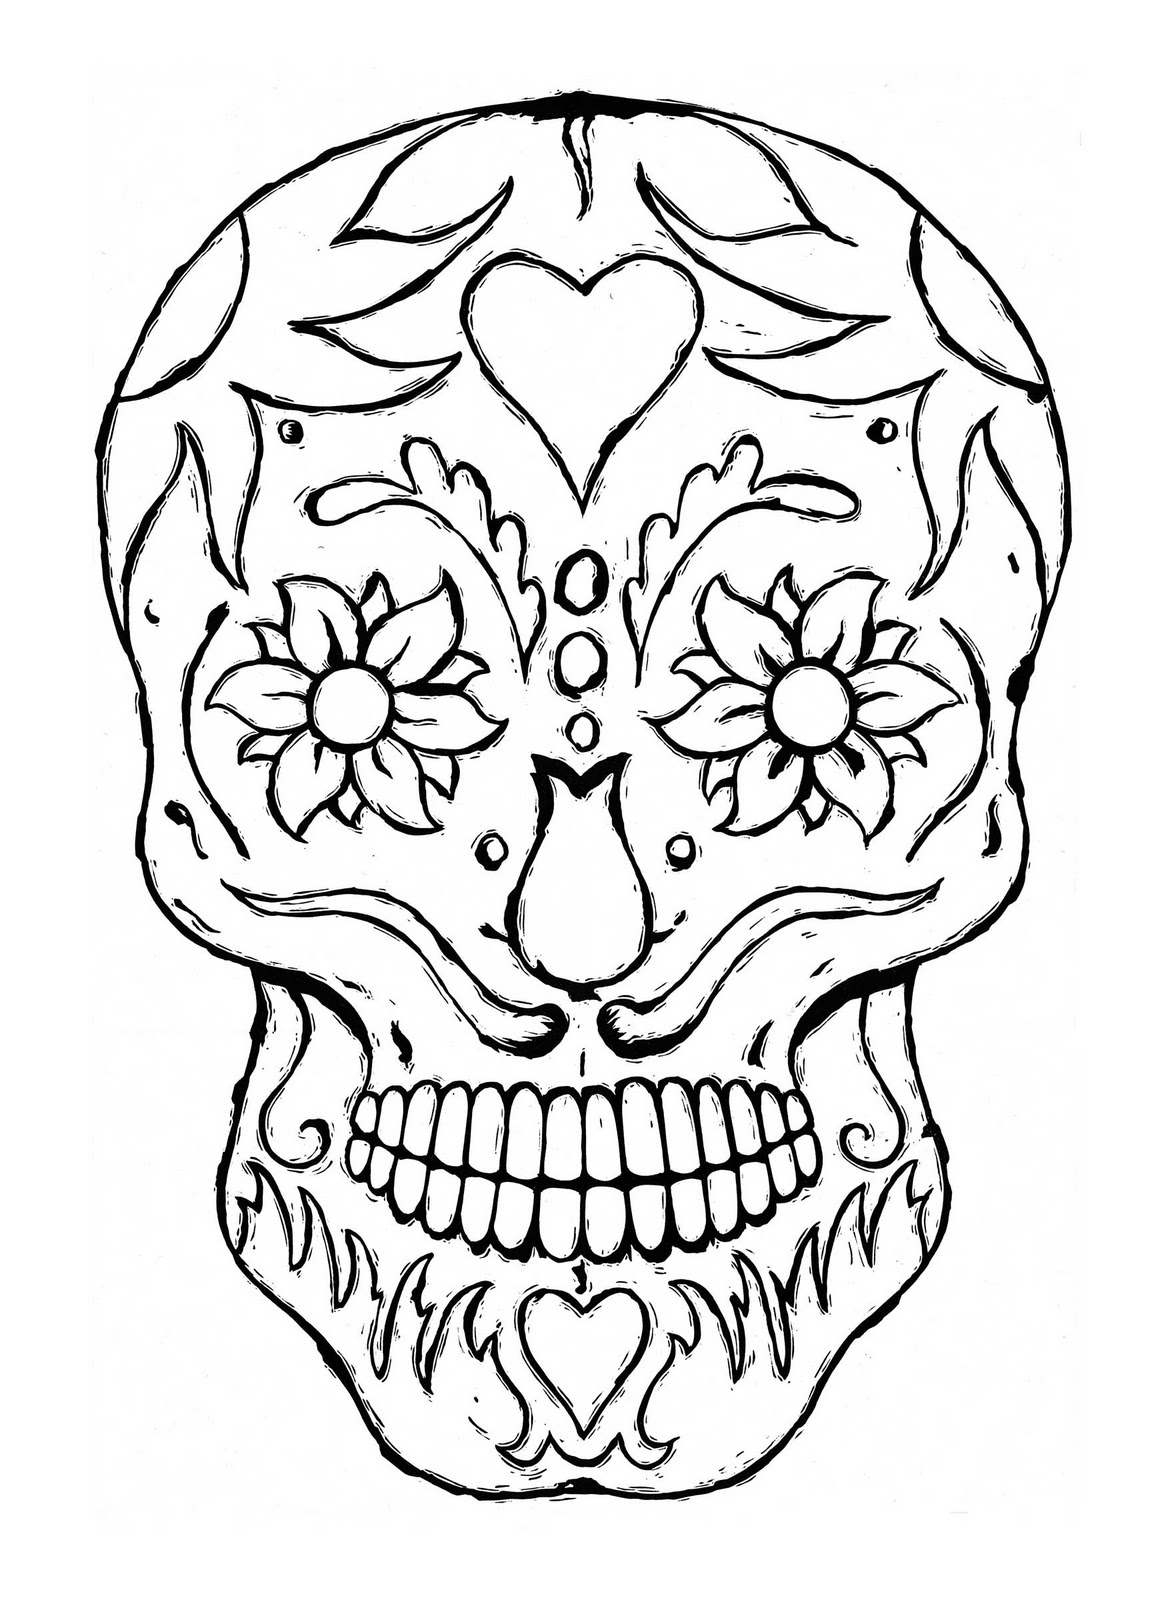 Skulls For Beginners Drawing At Getdrawings Com Free For